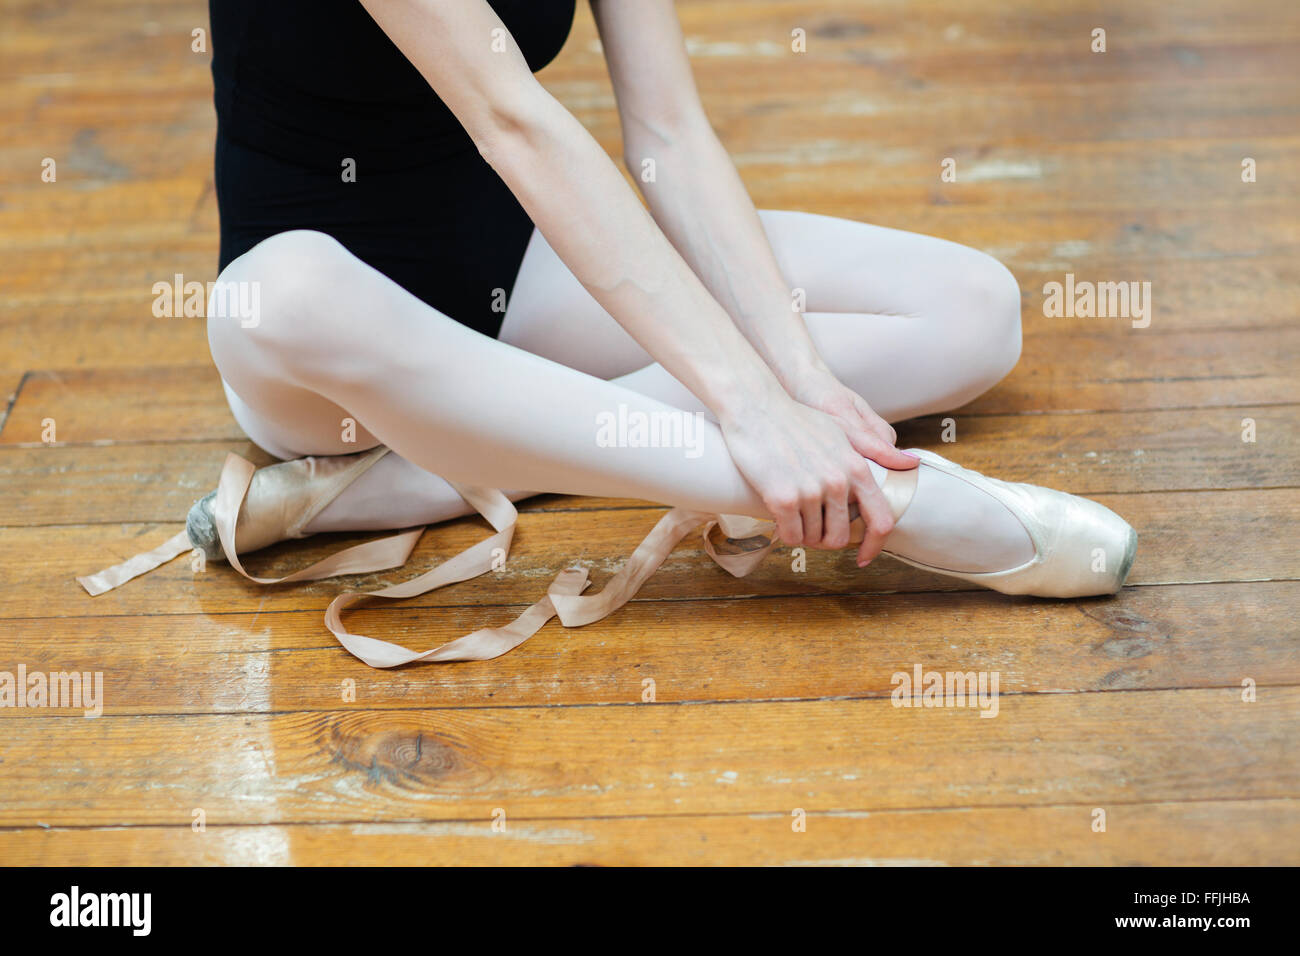 Cropped image of a ballerina in pointes having pain in ankle - Stock Image